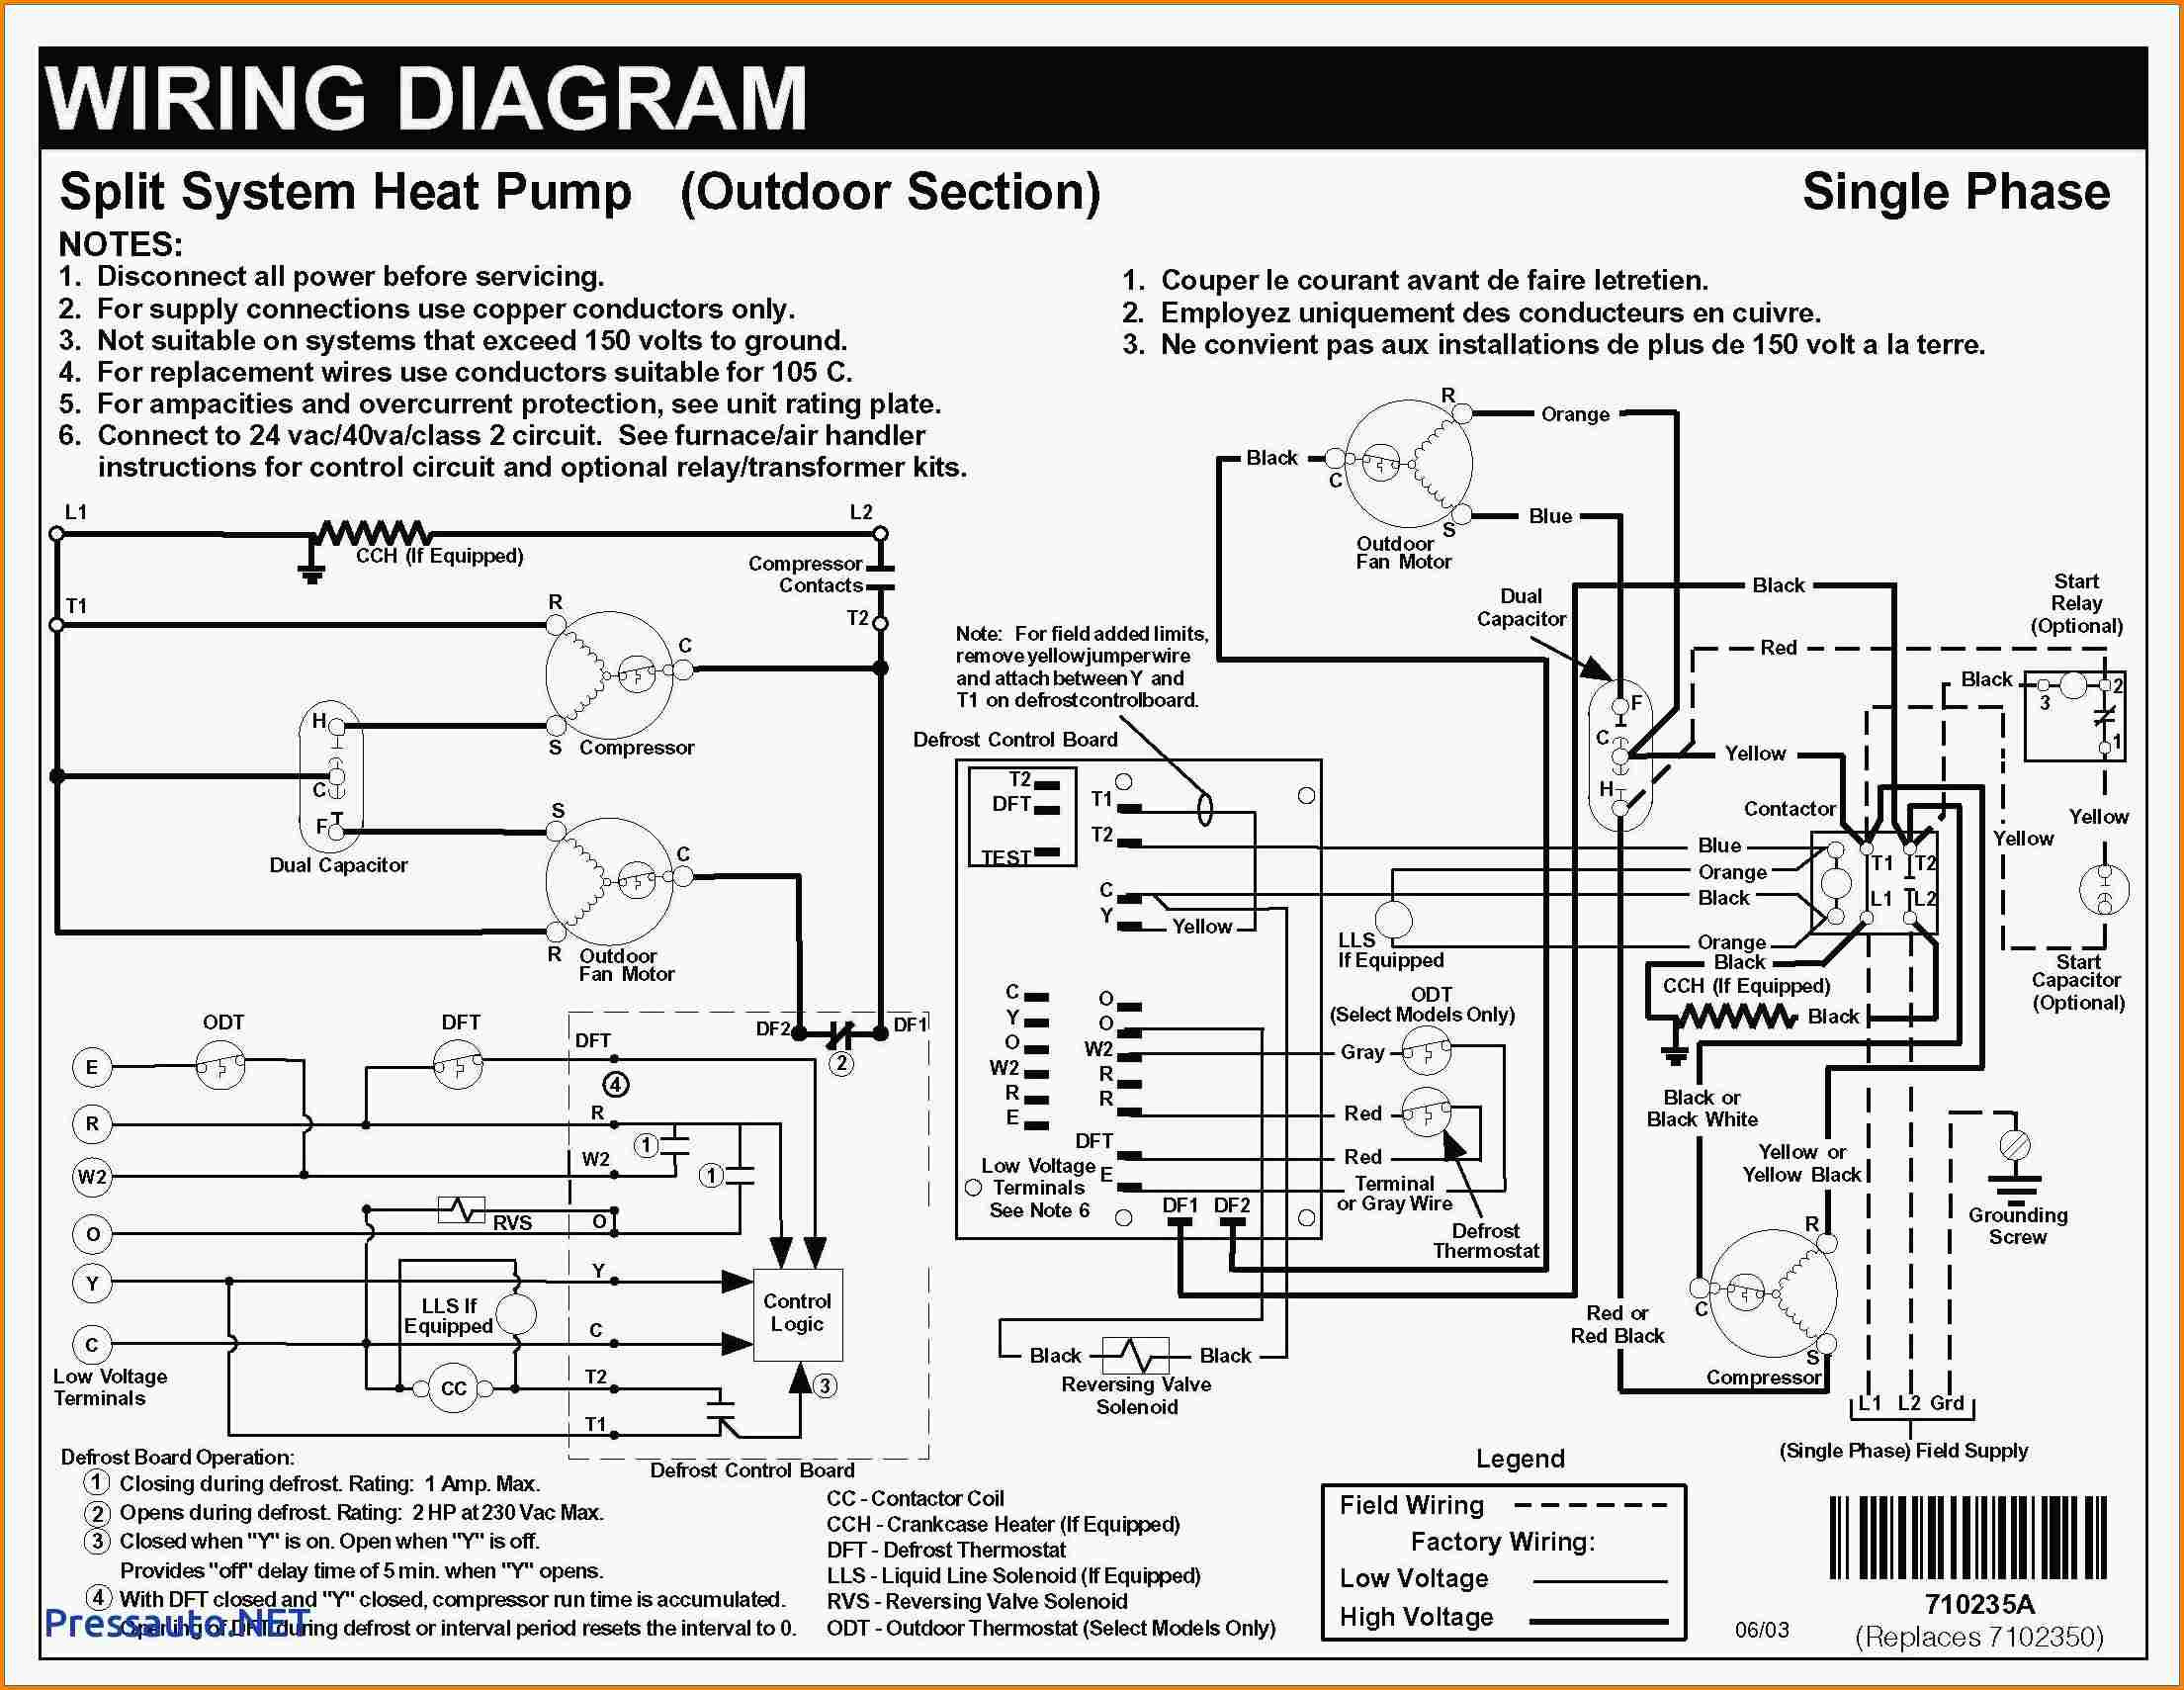 3 Phase Water Heater Wiring Diagram Free Download | Wiring ... on